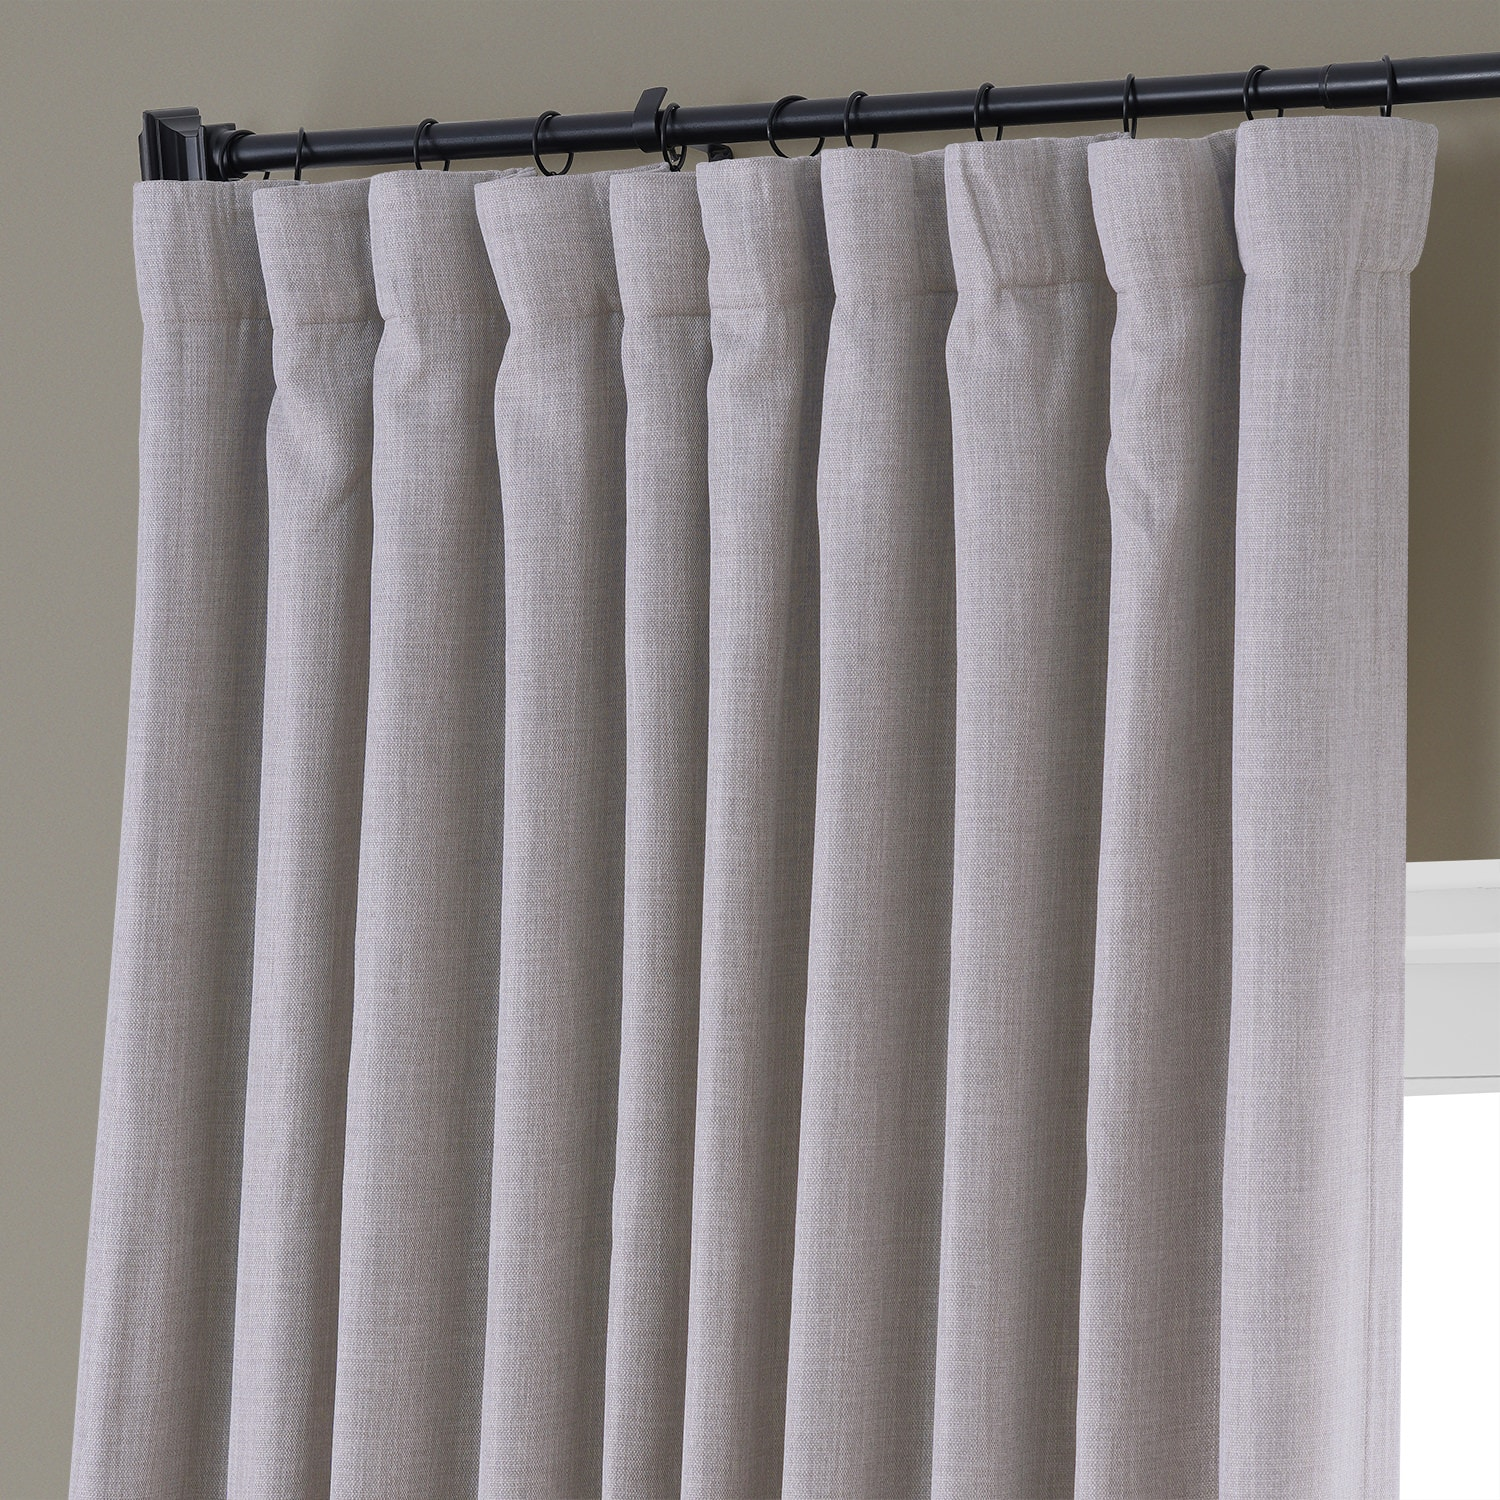 Clay Faux Linen Extra Wide Blackout Room Darkening Curtain